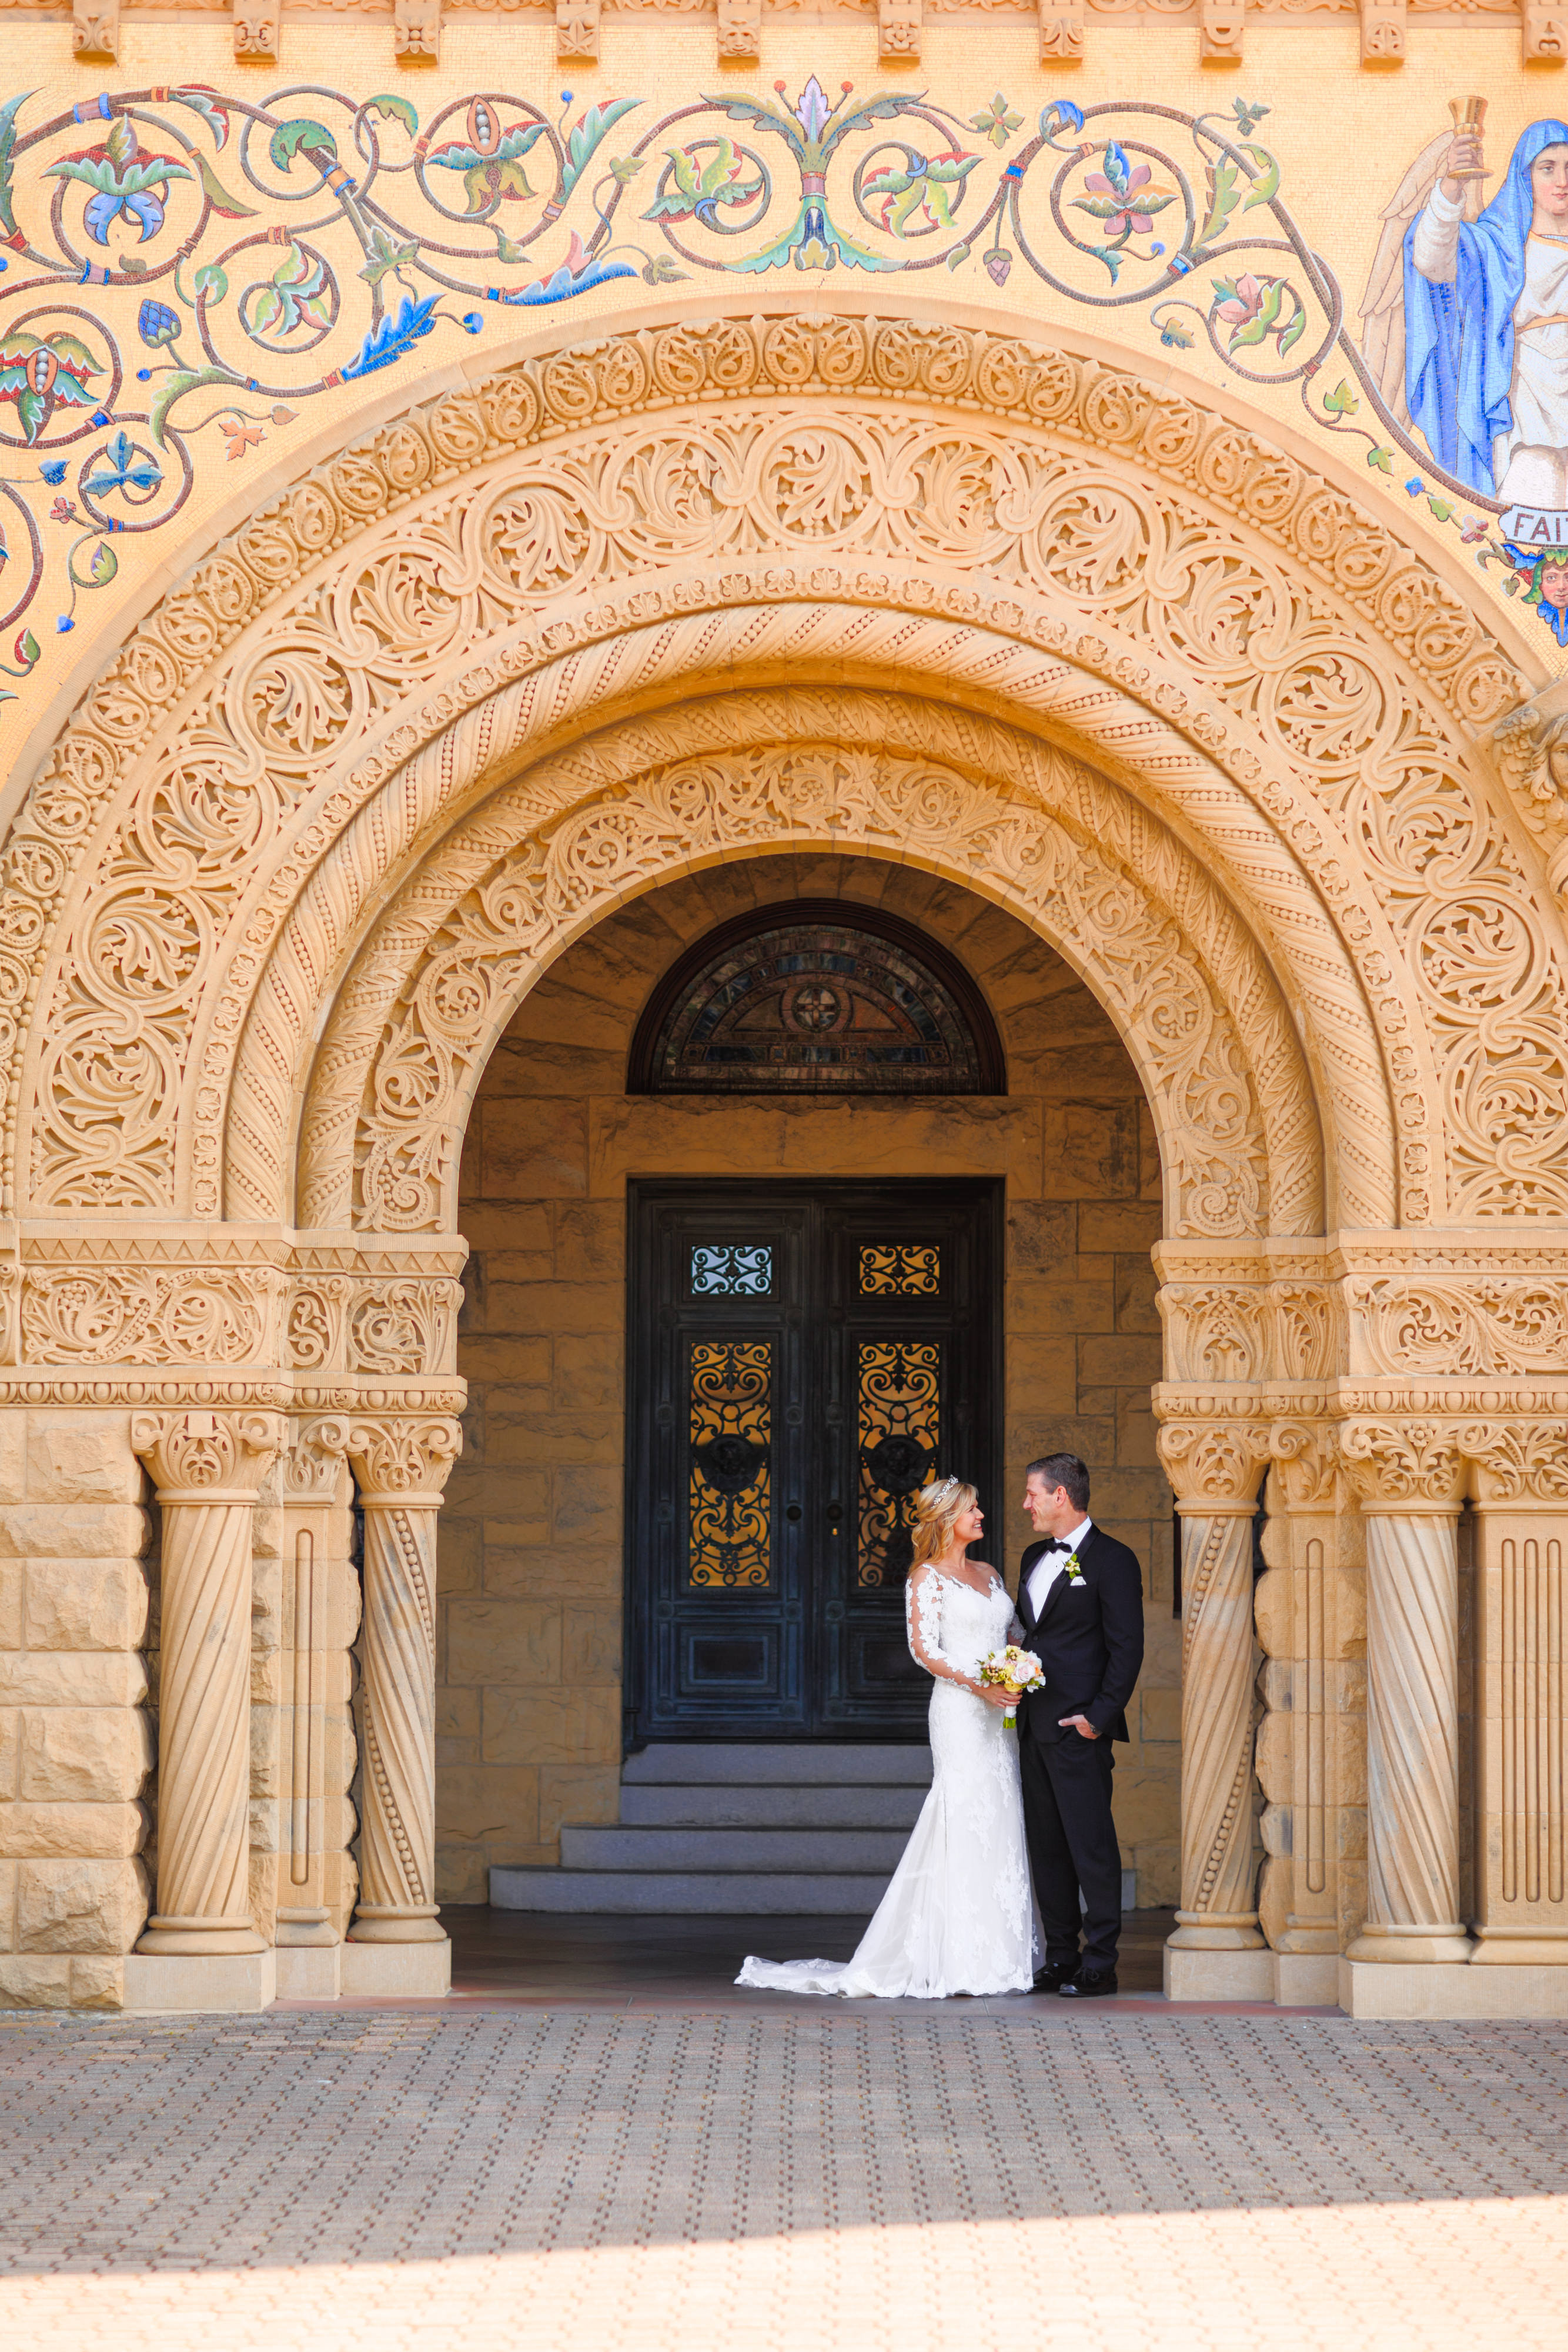 Wedding Shoot at Stanford University - Visuals by Arpit